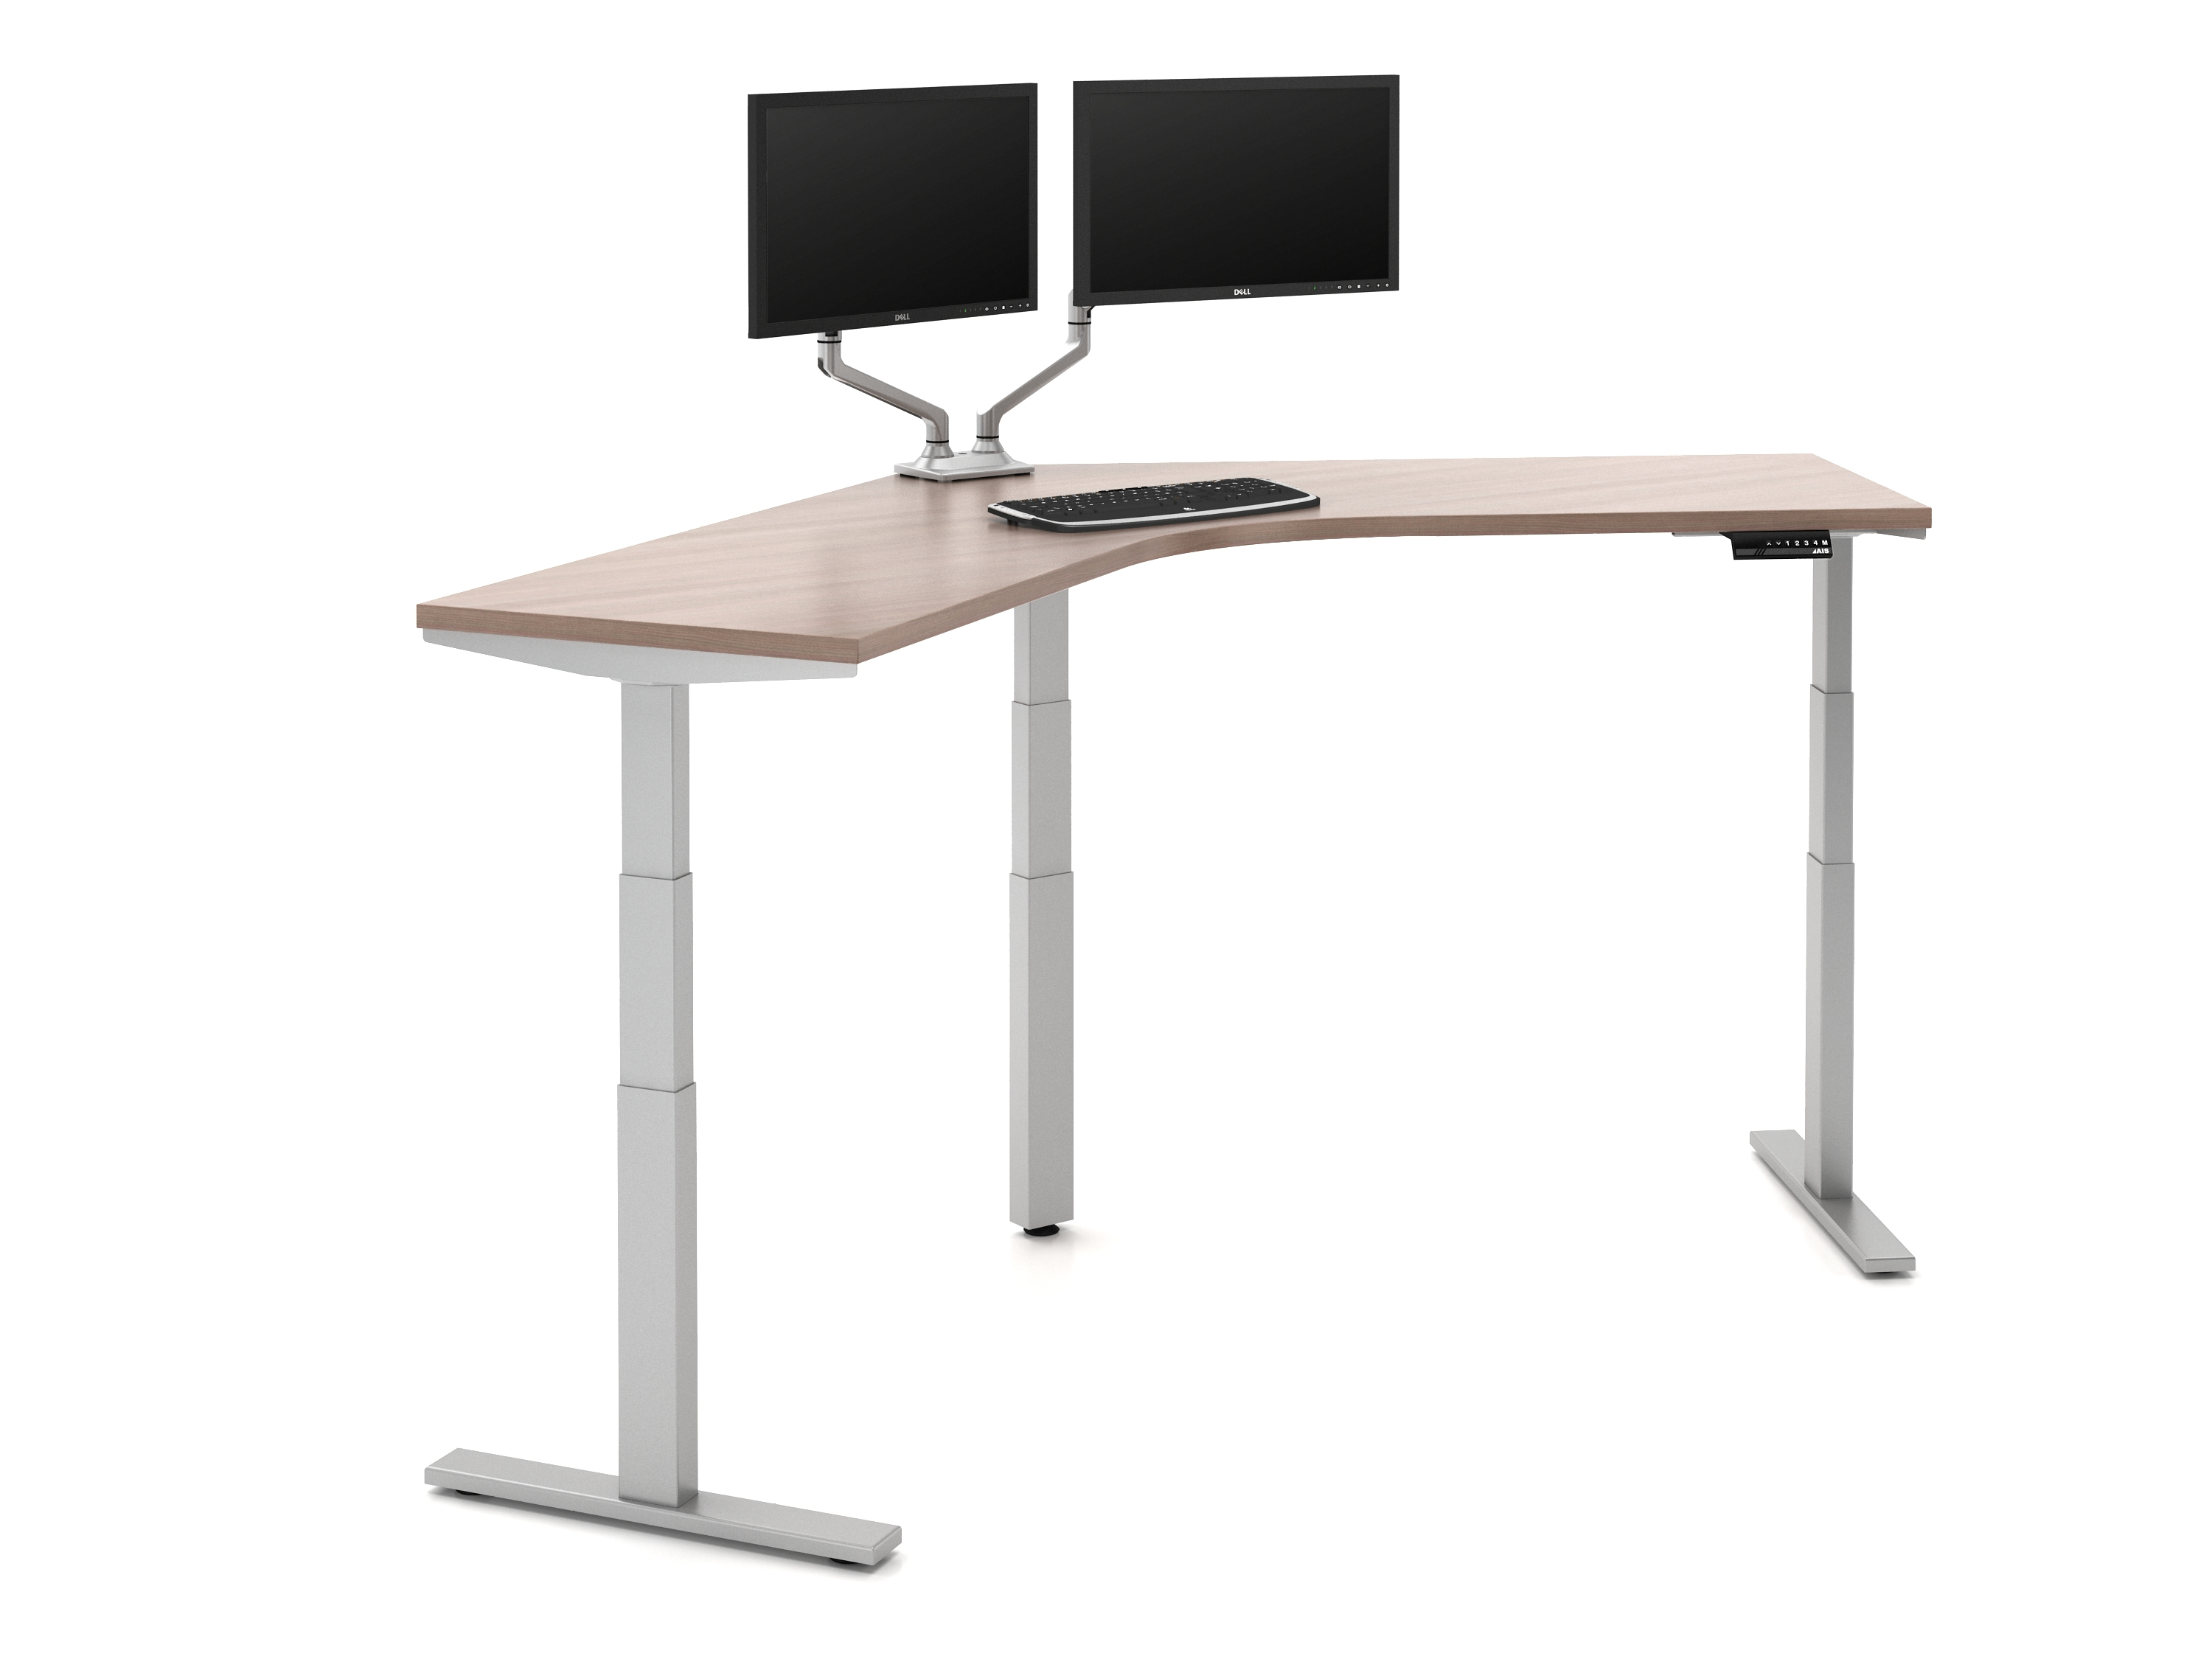 Day-to-Day 120 degree Height Adjustable Table